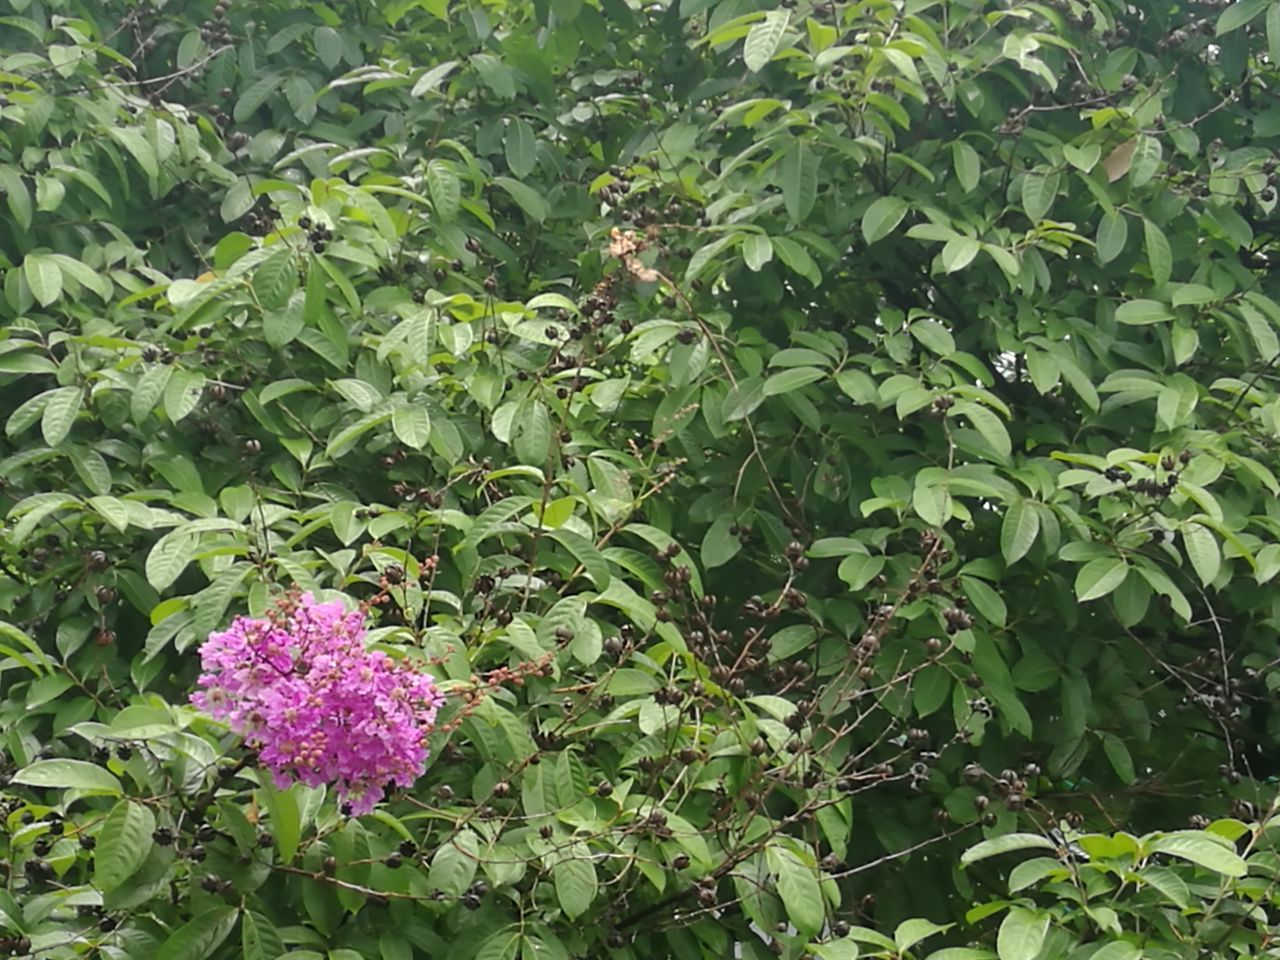 growth, plant, flower, leaf, green color, nature, outdoors, beauty in nature, day, no people, freshness, fragility, blooming, lilac, flower head